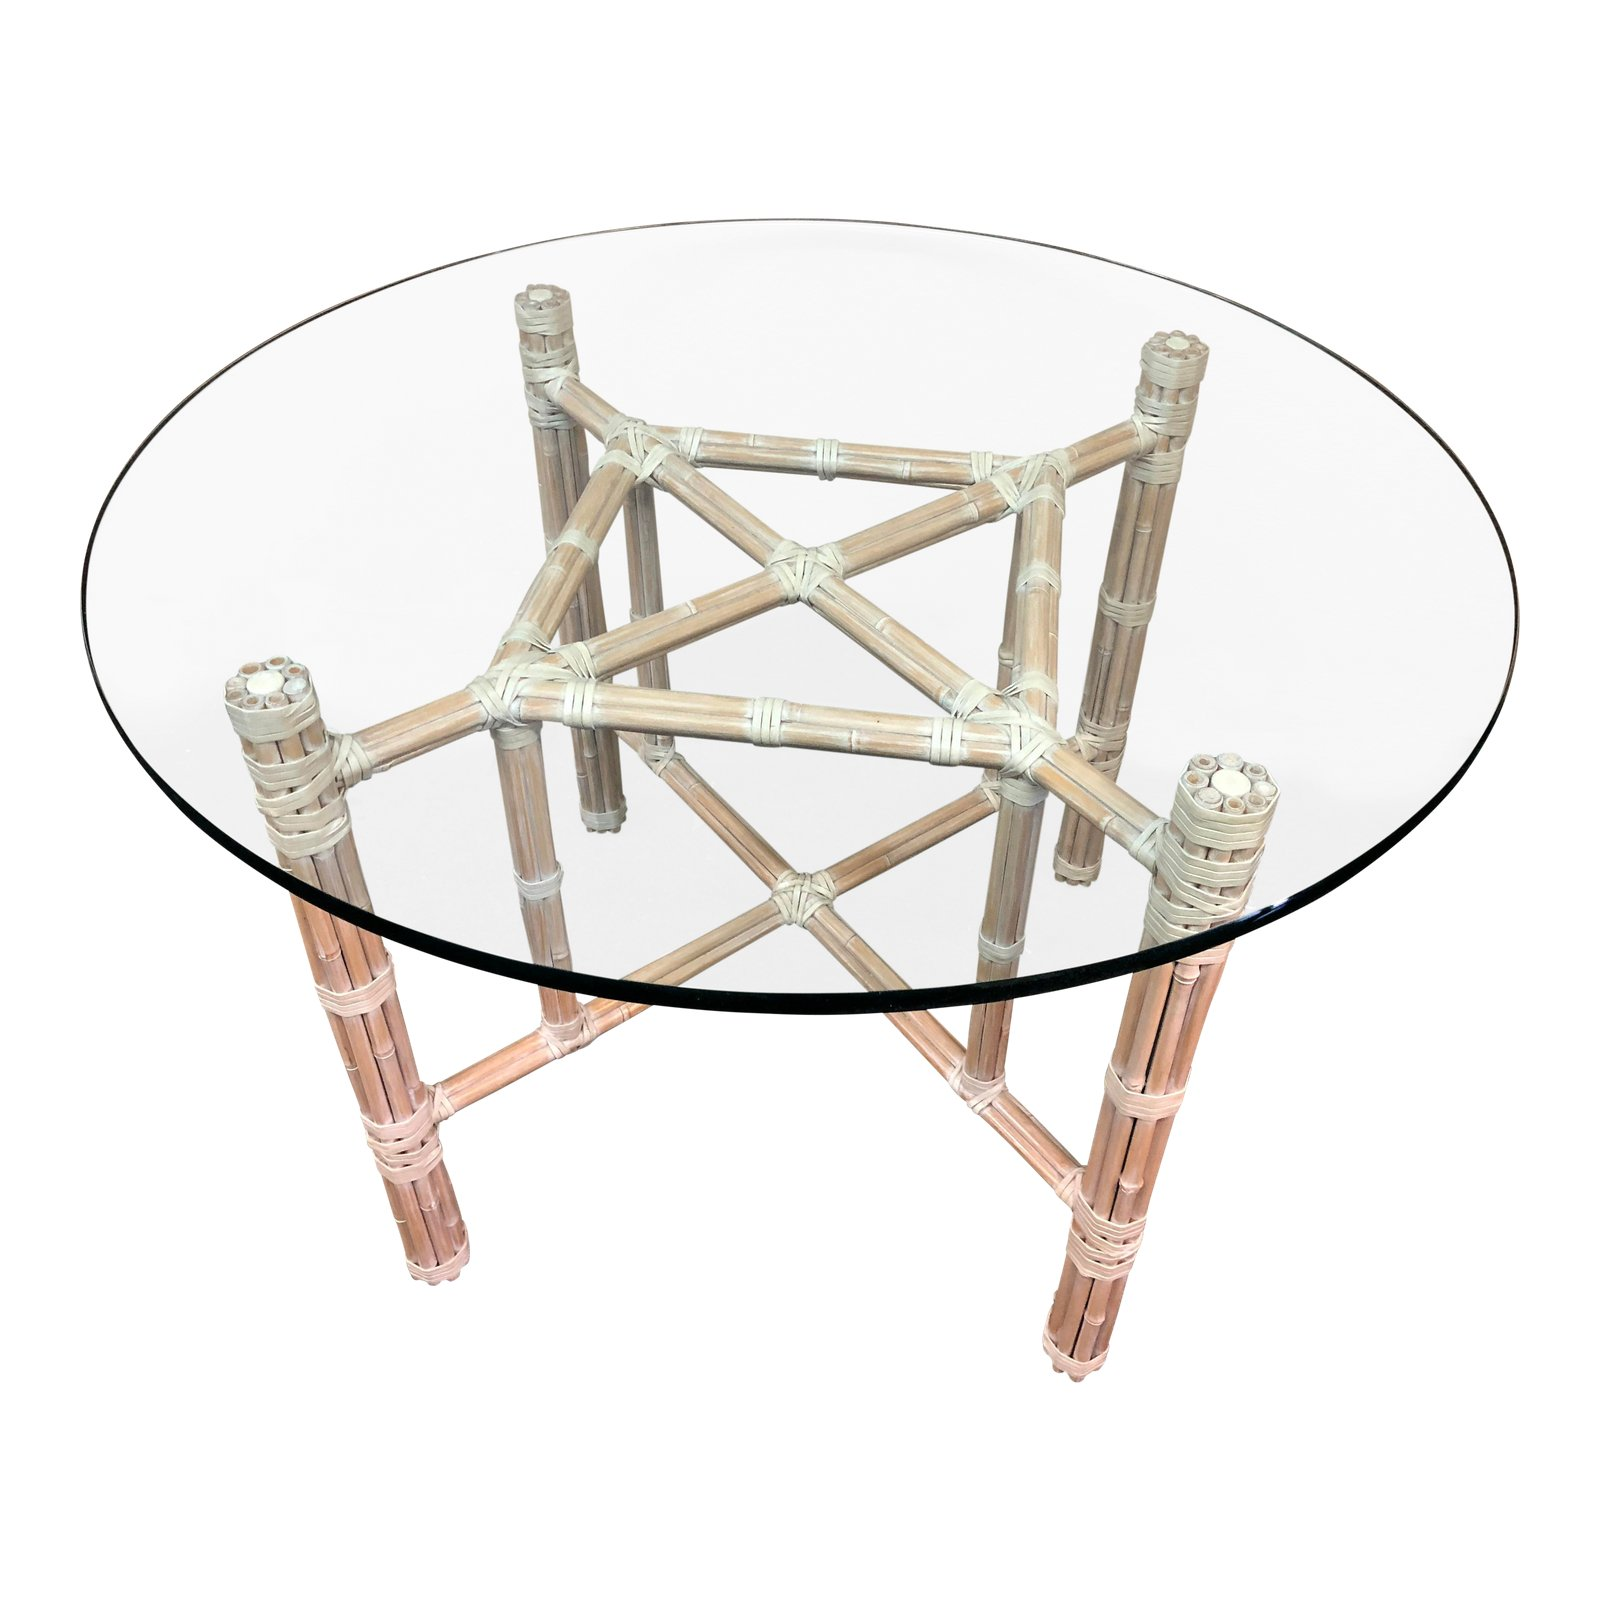 Bamboo Table With Design: McGuire Leather Wrapped Bamboo Table